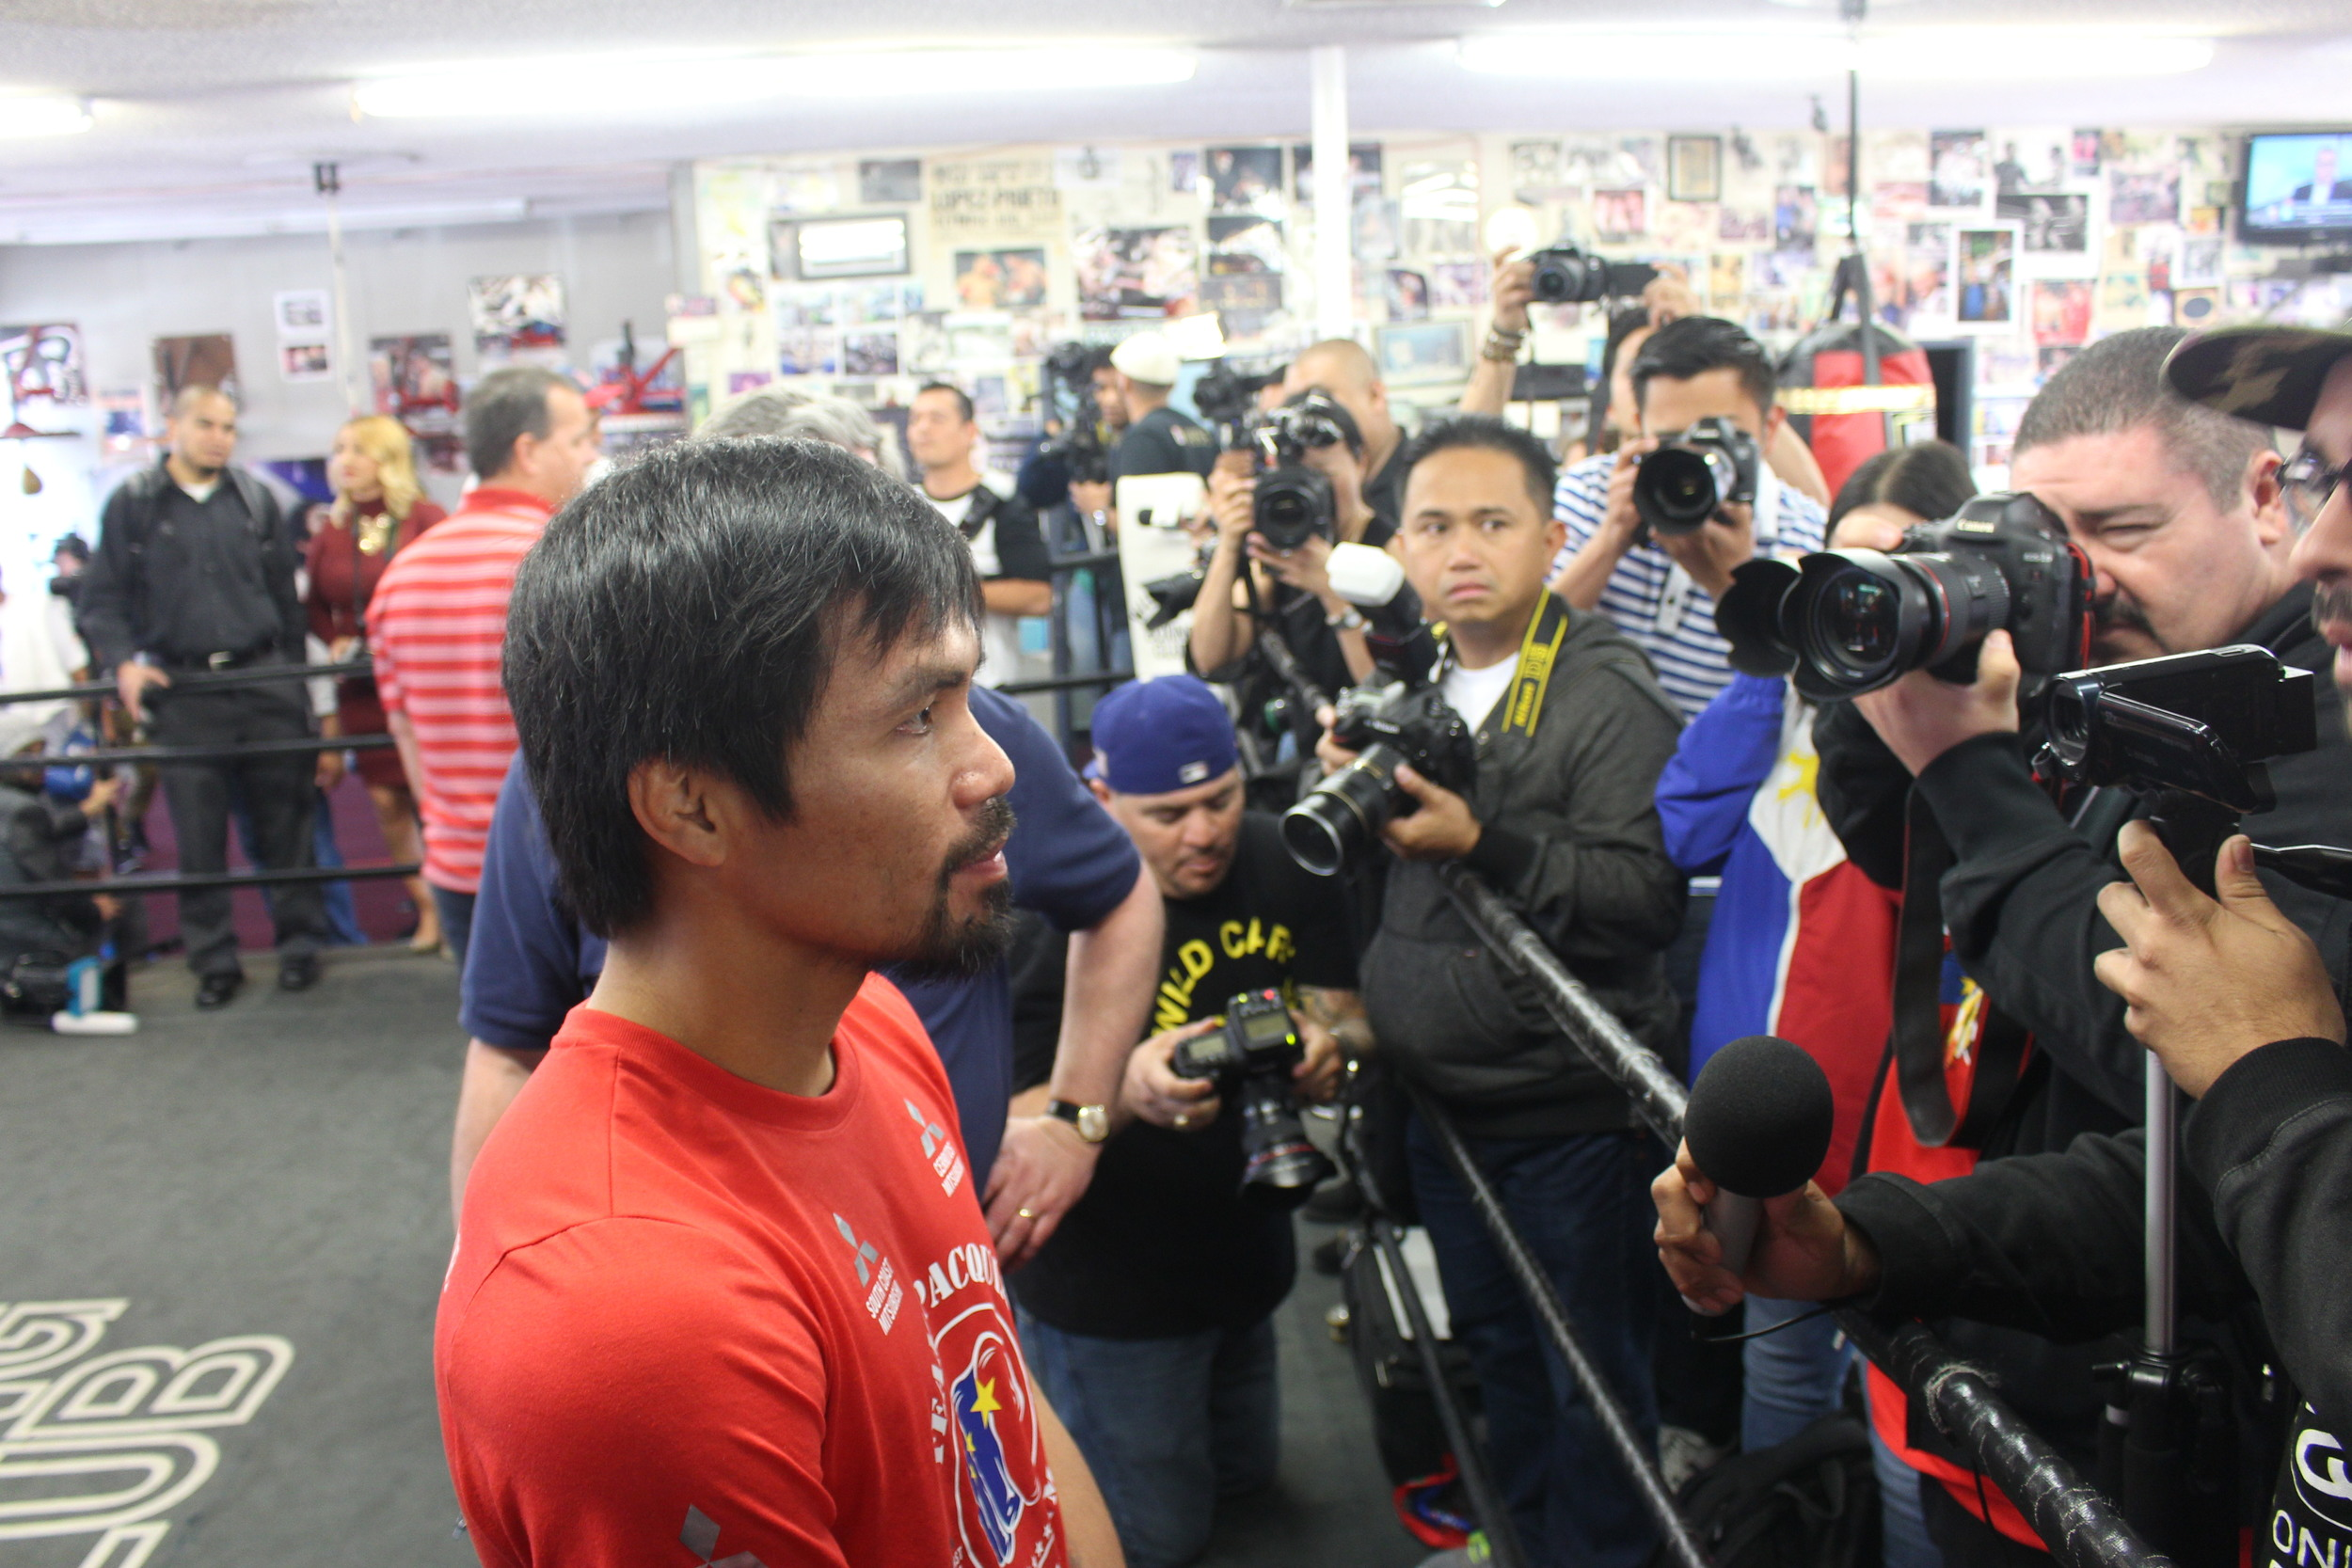 Pacquiao takes questions from the media before beginning his workout. Photo: Harvey Feliciano- Z-BoxingNews/FrontProofMedia.com